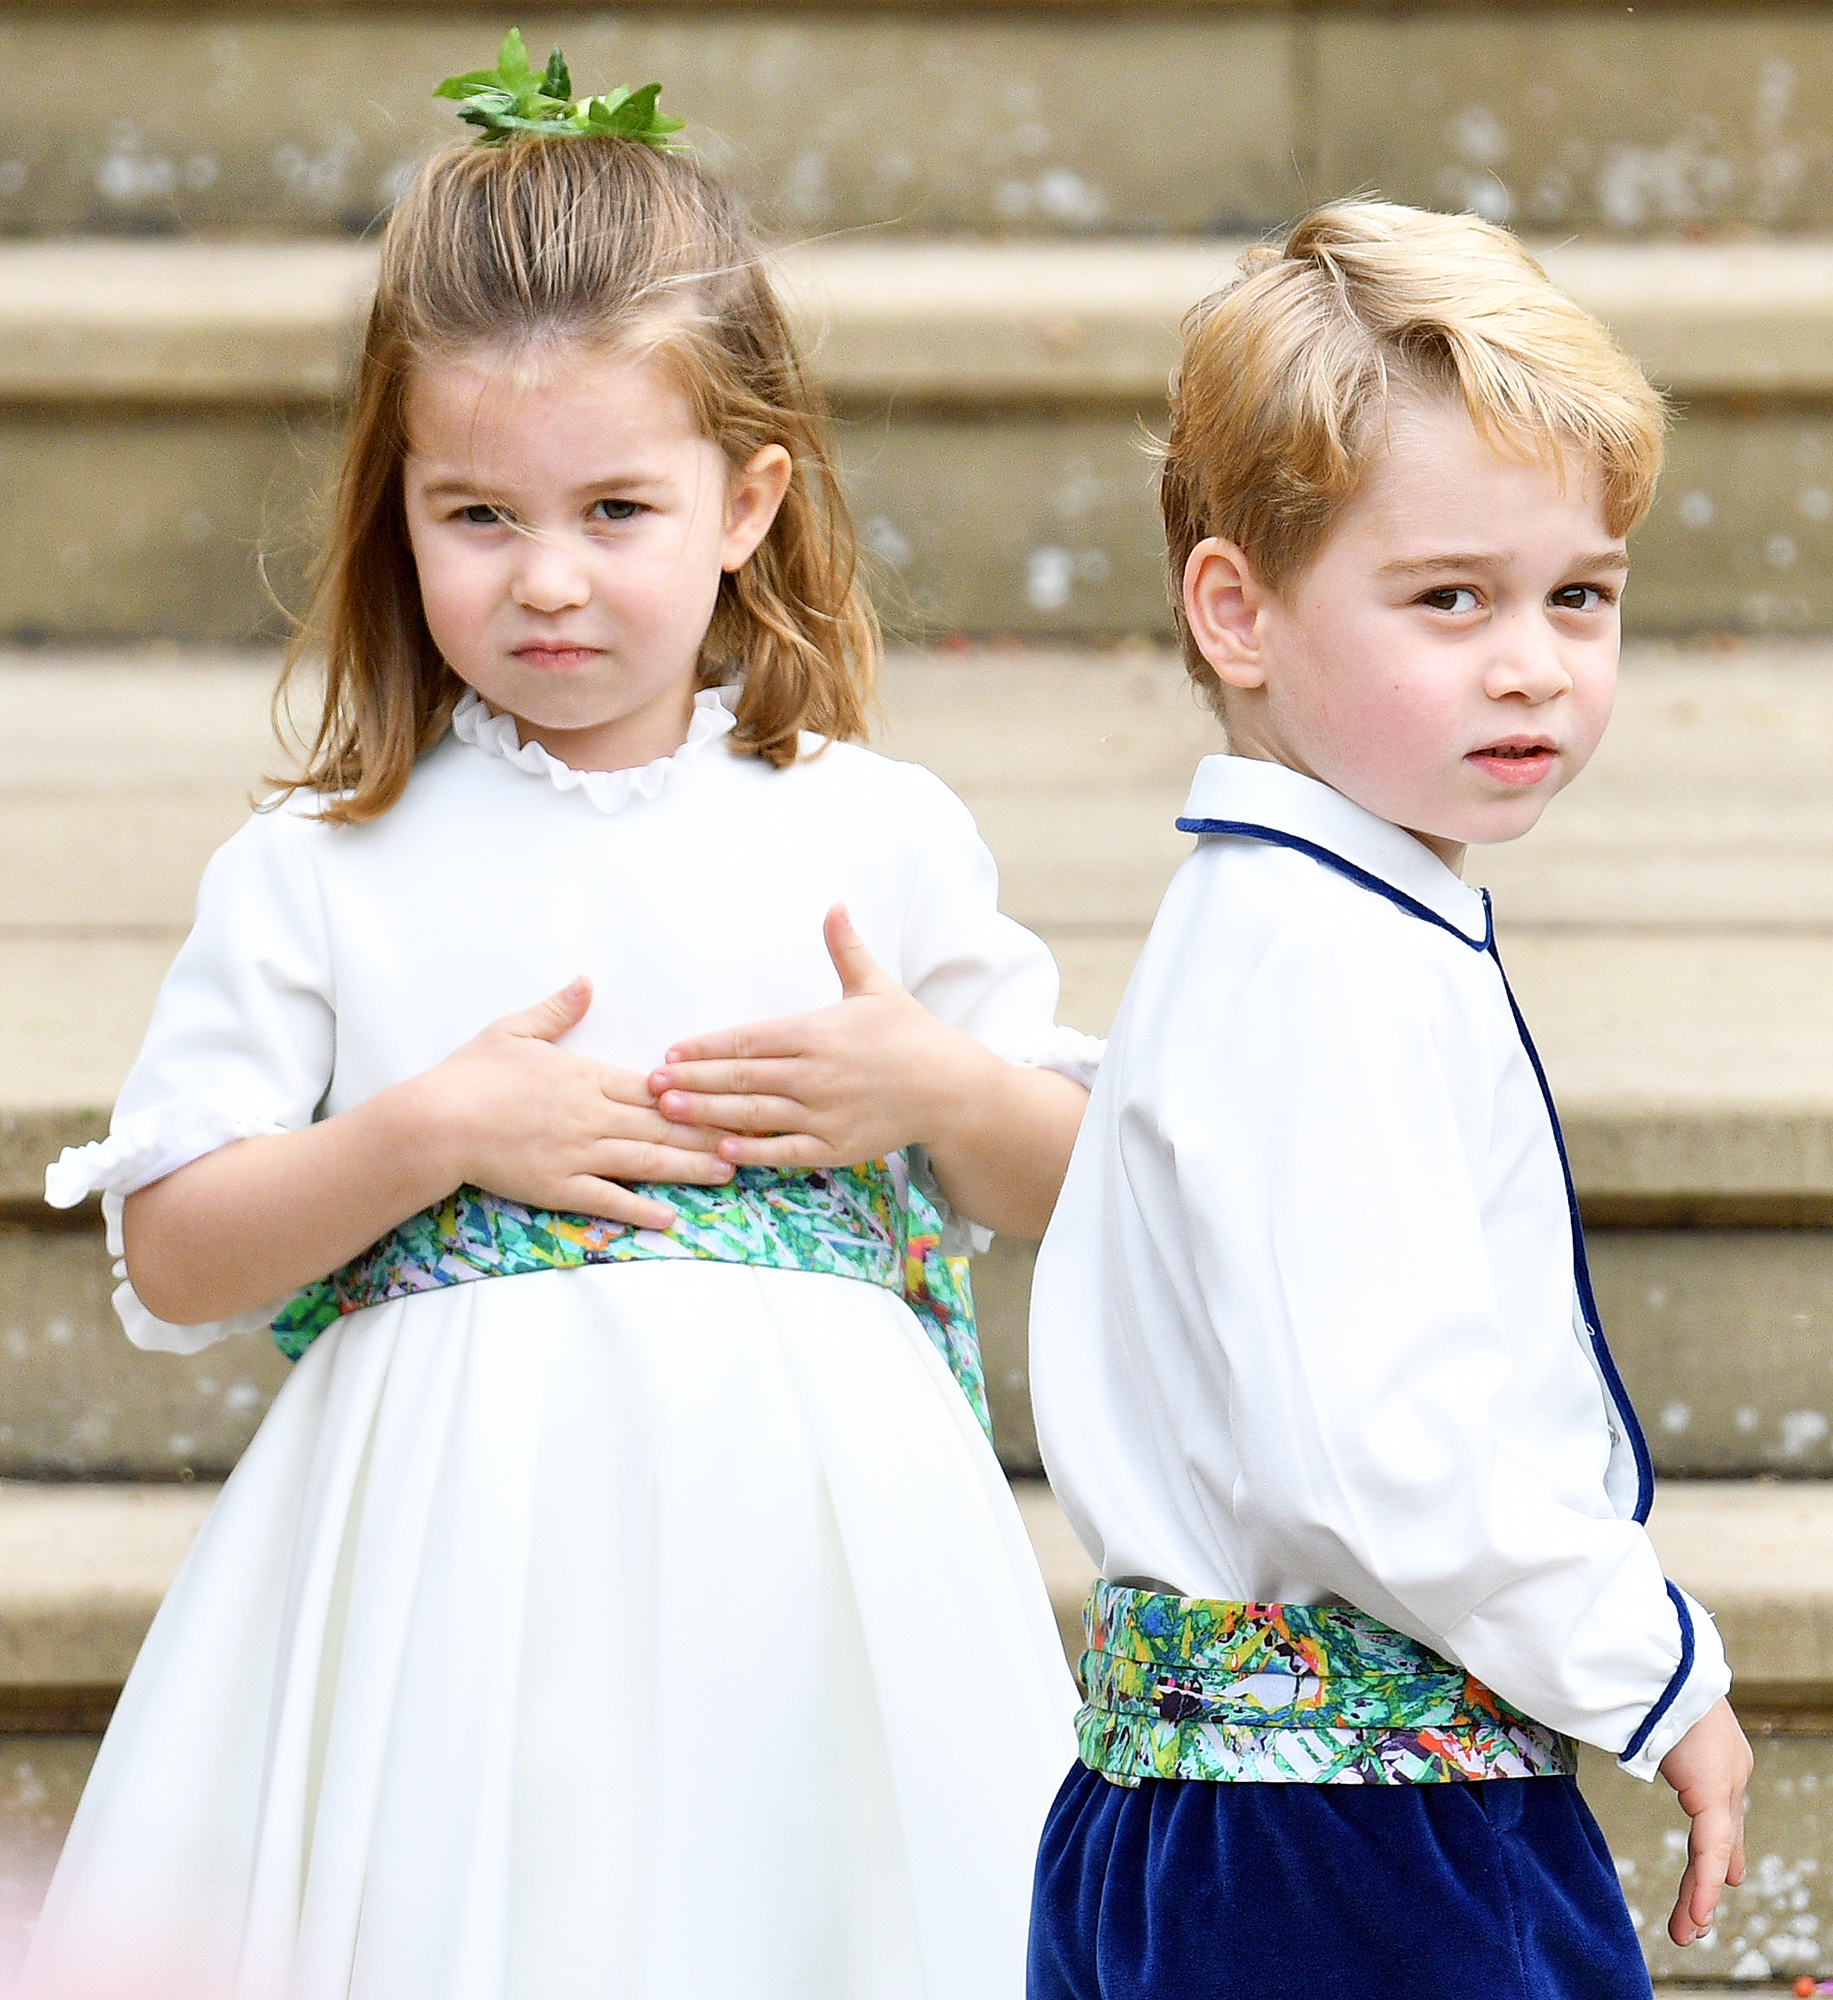 Princess Charlotte Prince George Princess Eugenie Wedding - Princess Charlotte and Prince George were a bridesmaid and pageboy, respectively, in Princess Eugenie's wedding to Jack Brooksbank on October 12, 2018. Three days later, Prince Harry and Duchess Meghan — who were in attendance for the ceremony — announced they are expecting their first child together.